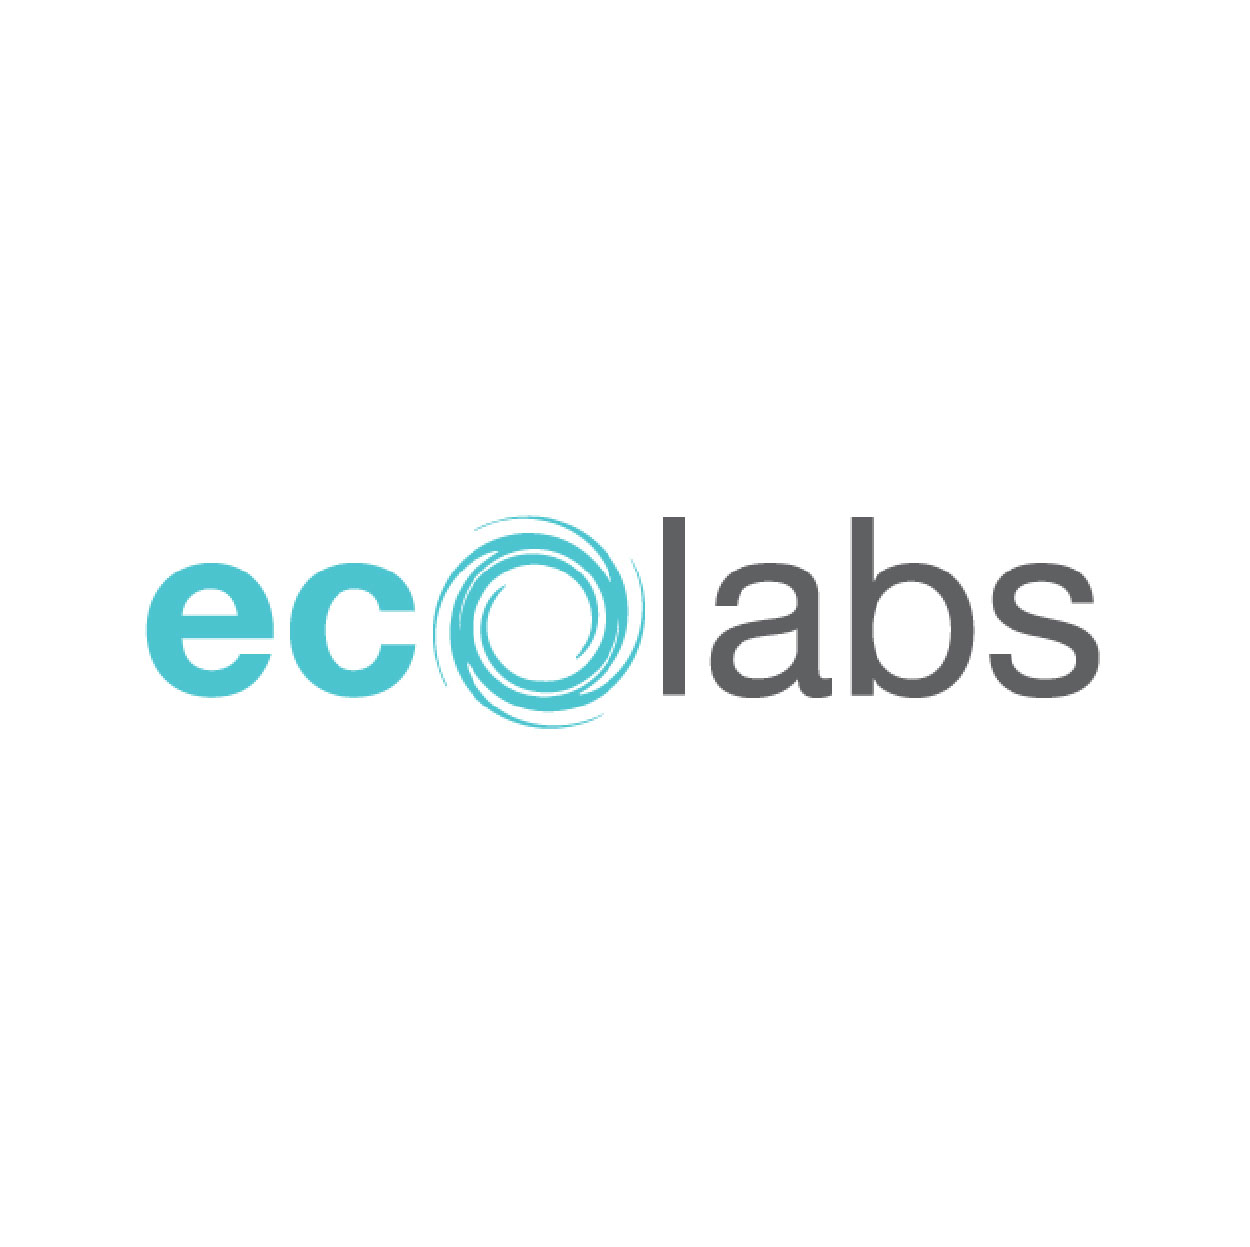 Ecolabs in an Ecocoast Brand